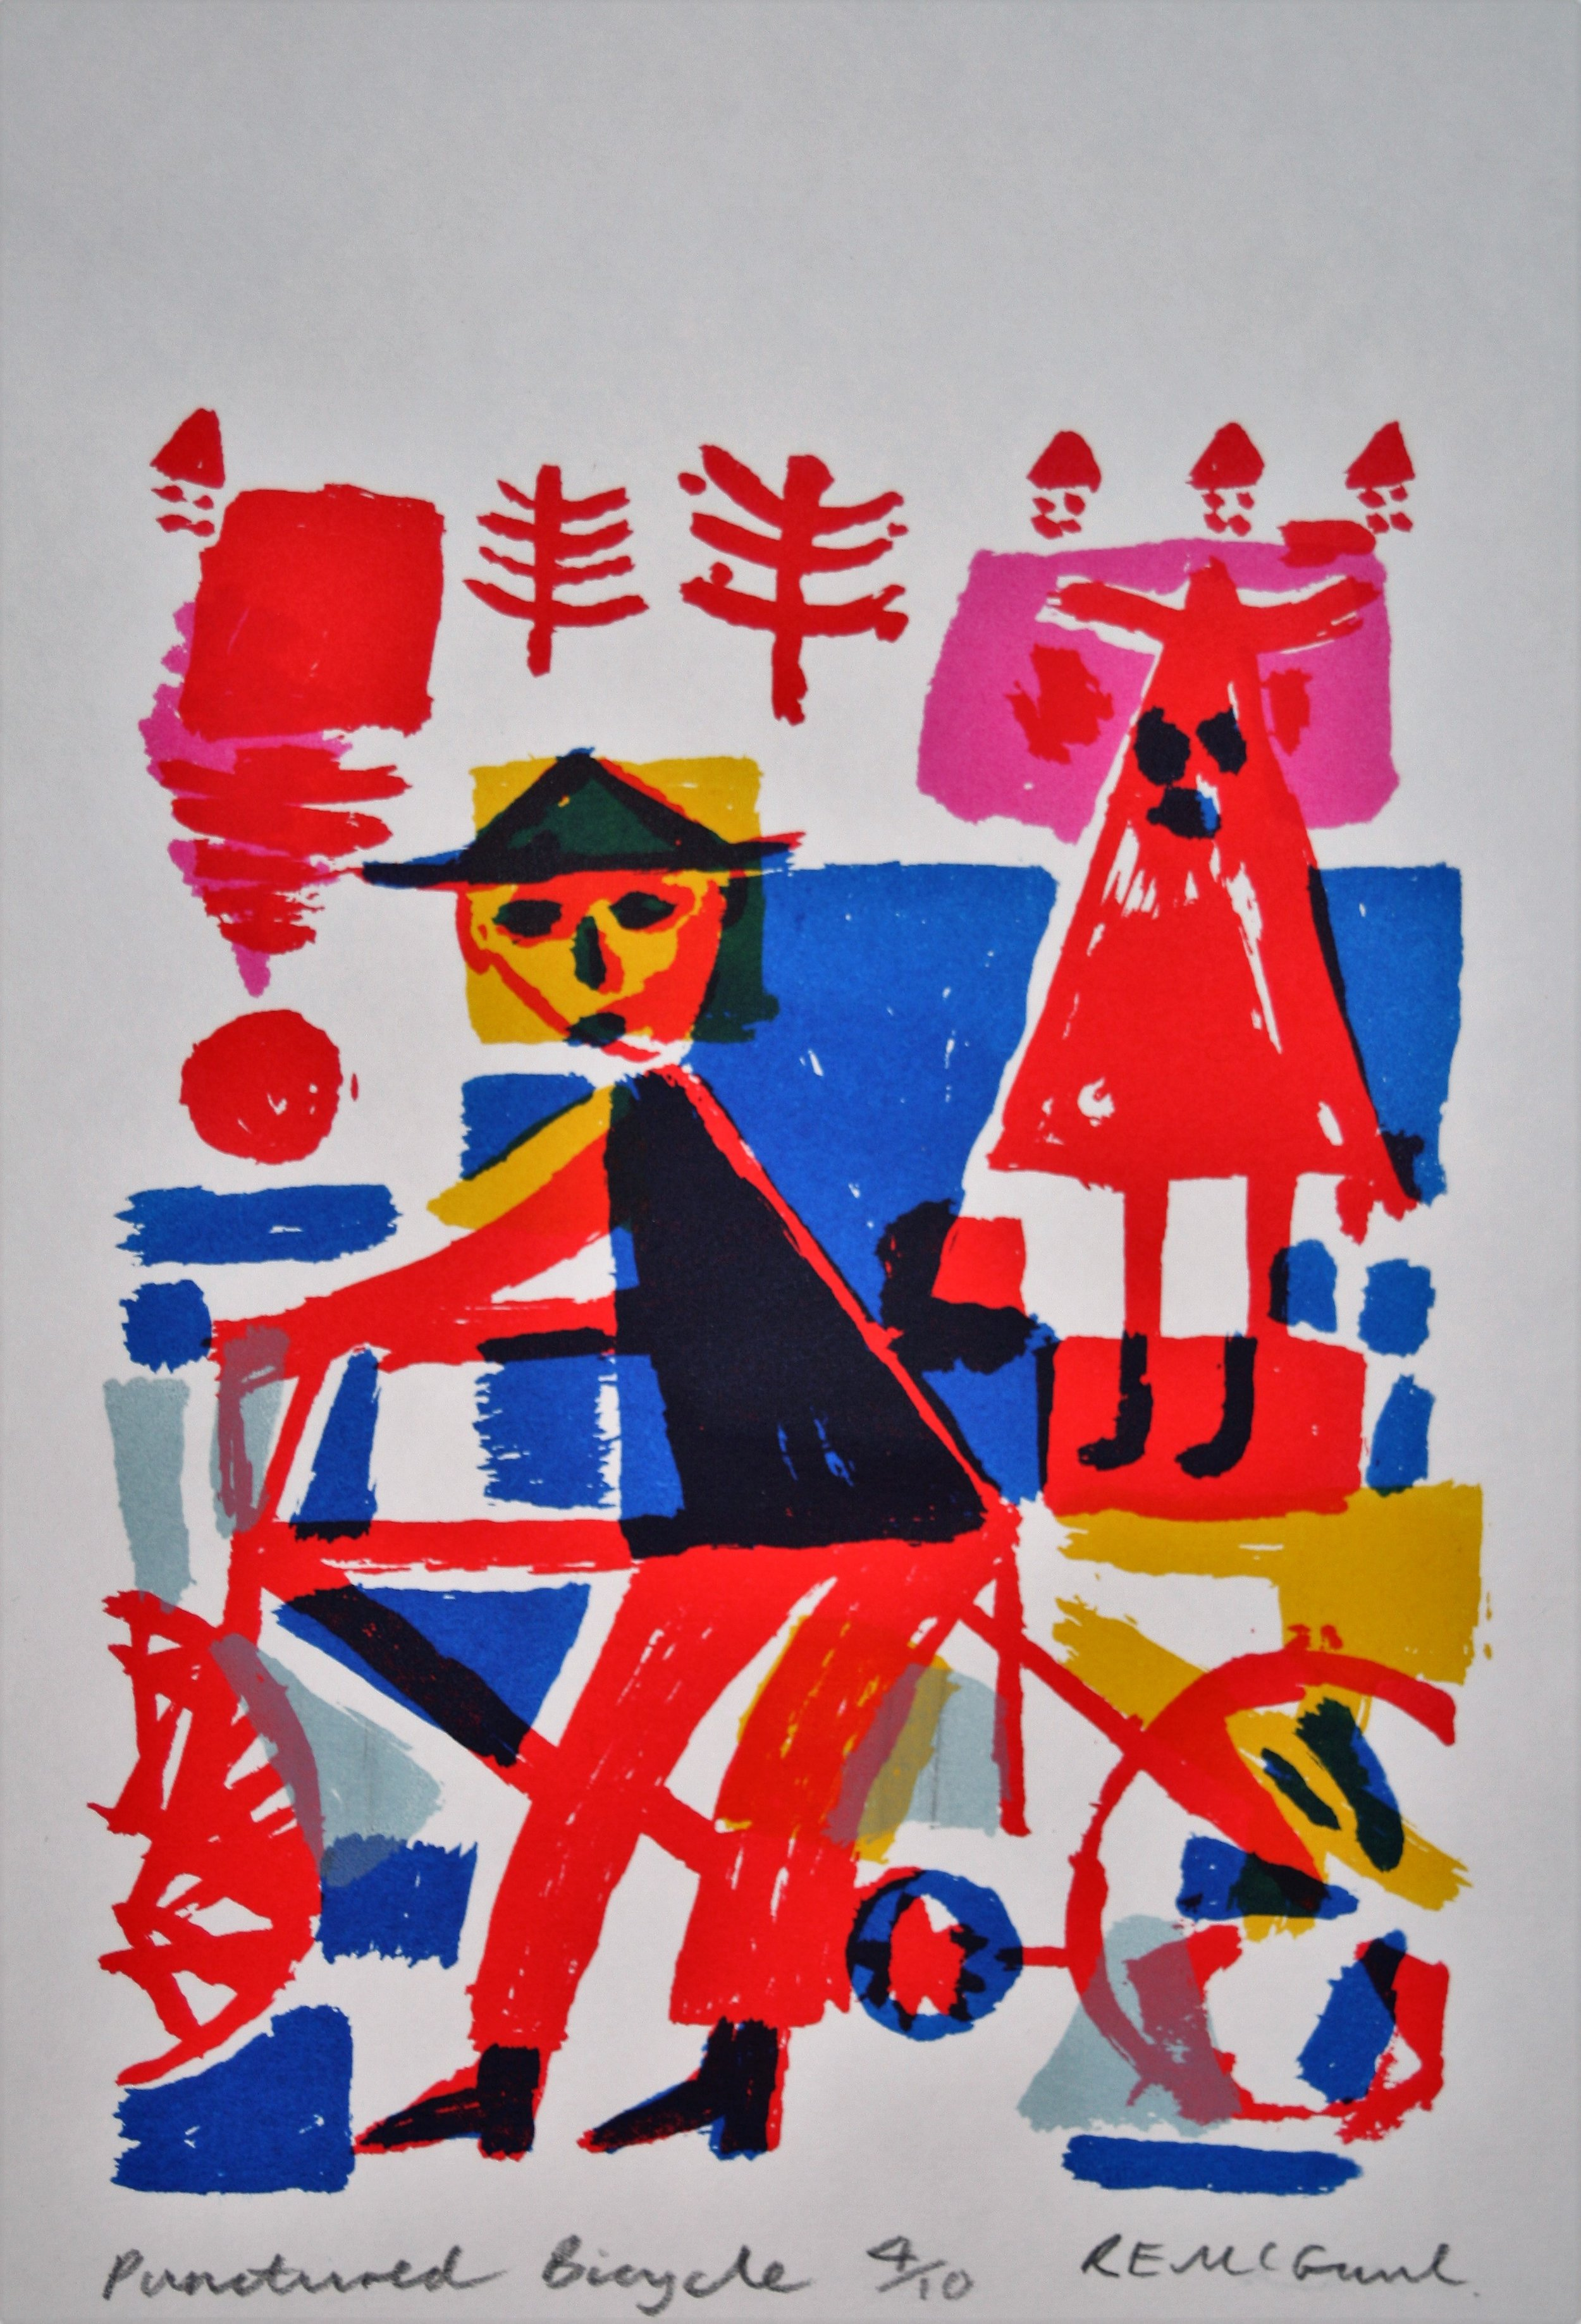 Punctured Bicycle screenprint by Ralph McGaul.